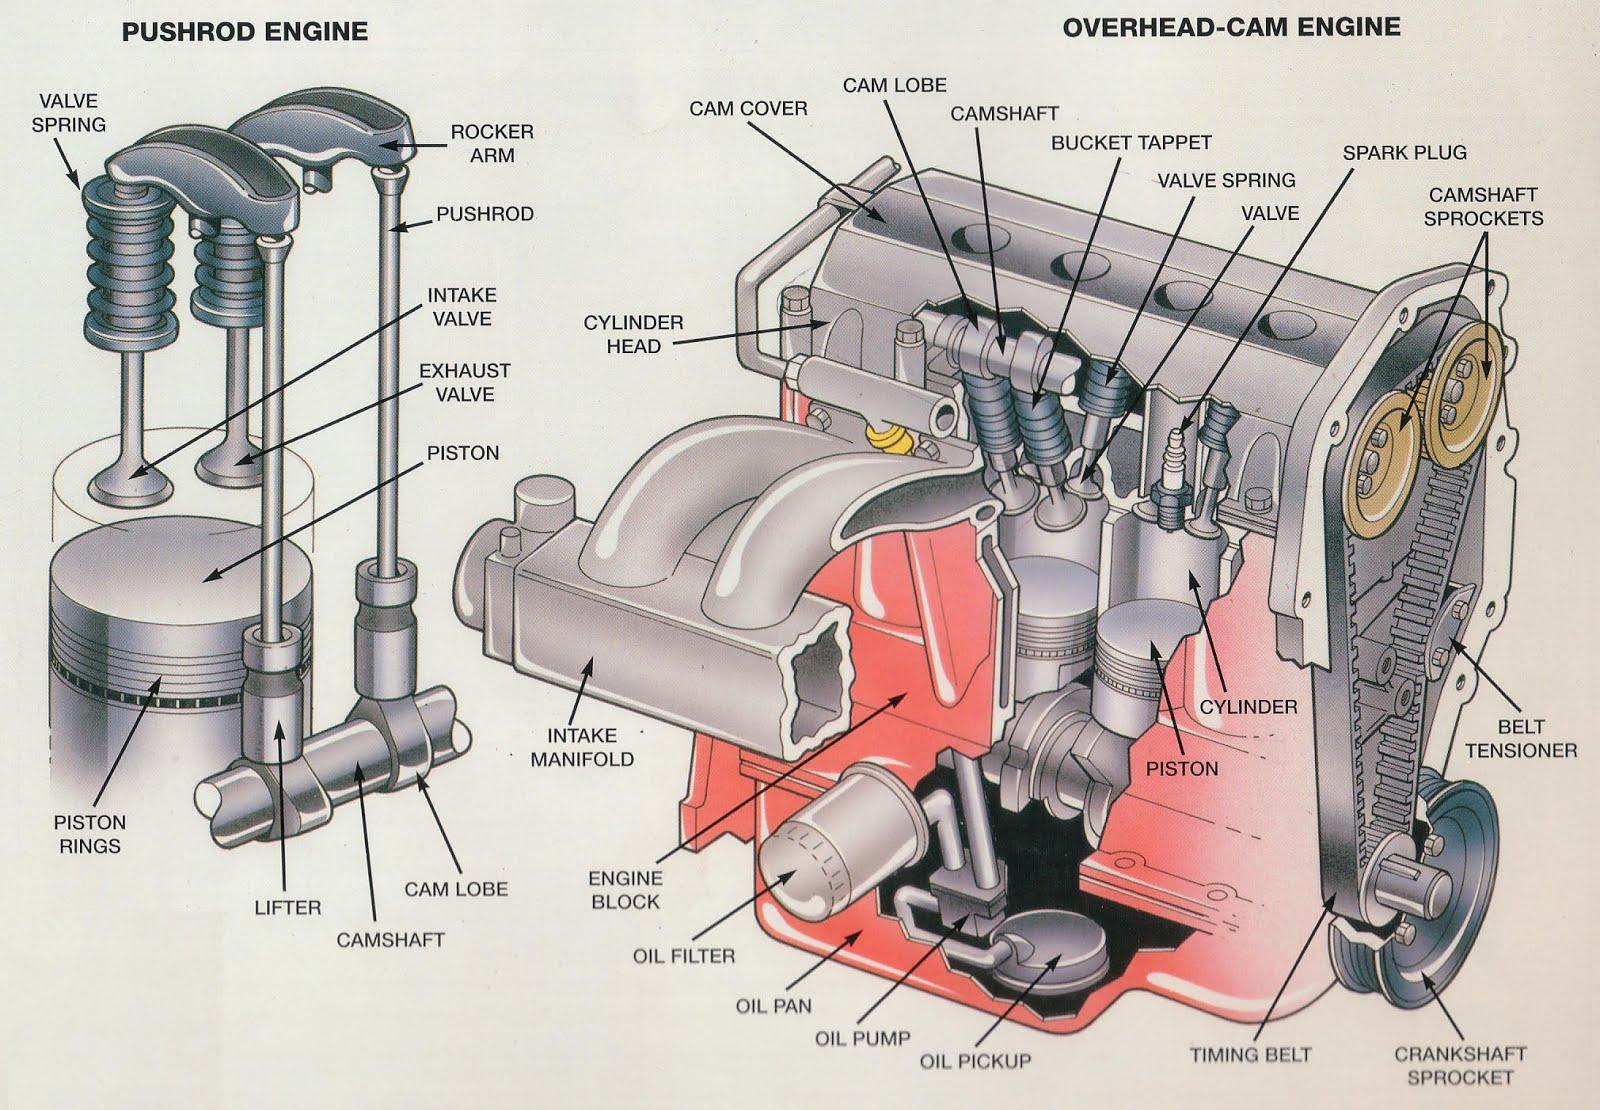 Overhead Cam Engine & Pushrod